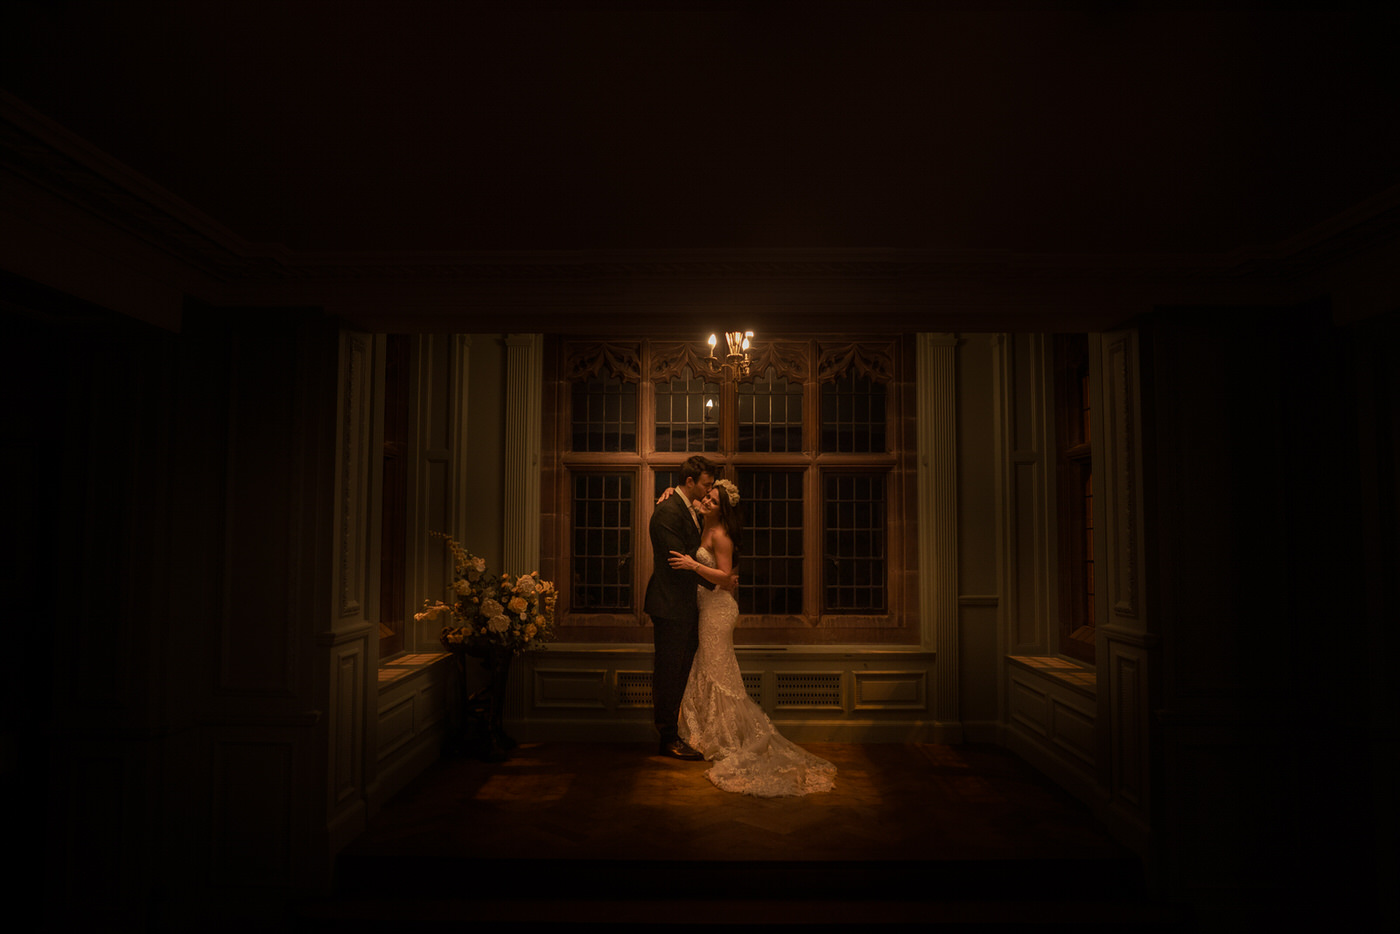 Thornton Manor makes the perfect backdrop for the bride and groom